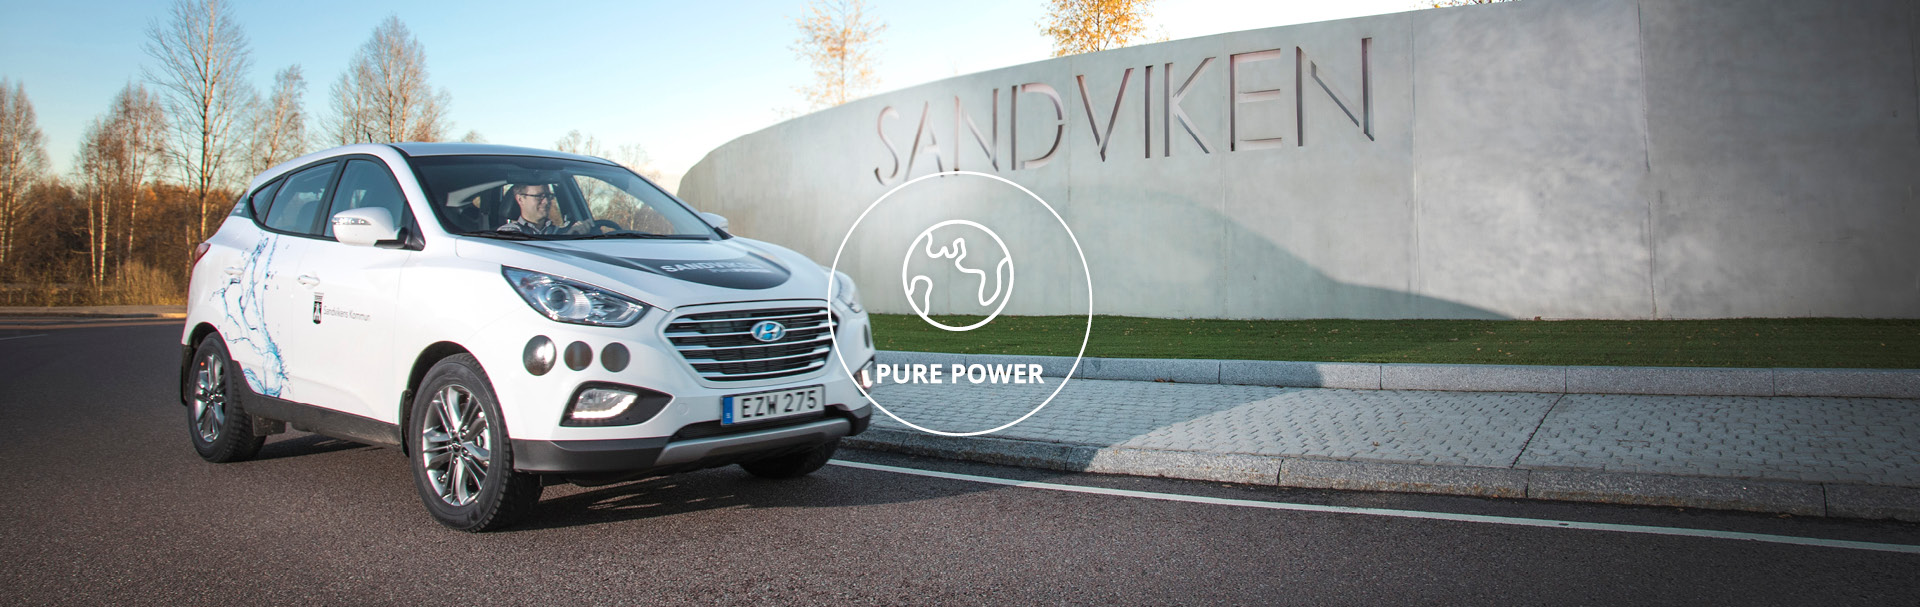 About Sandviken Pure Power